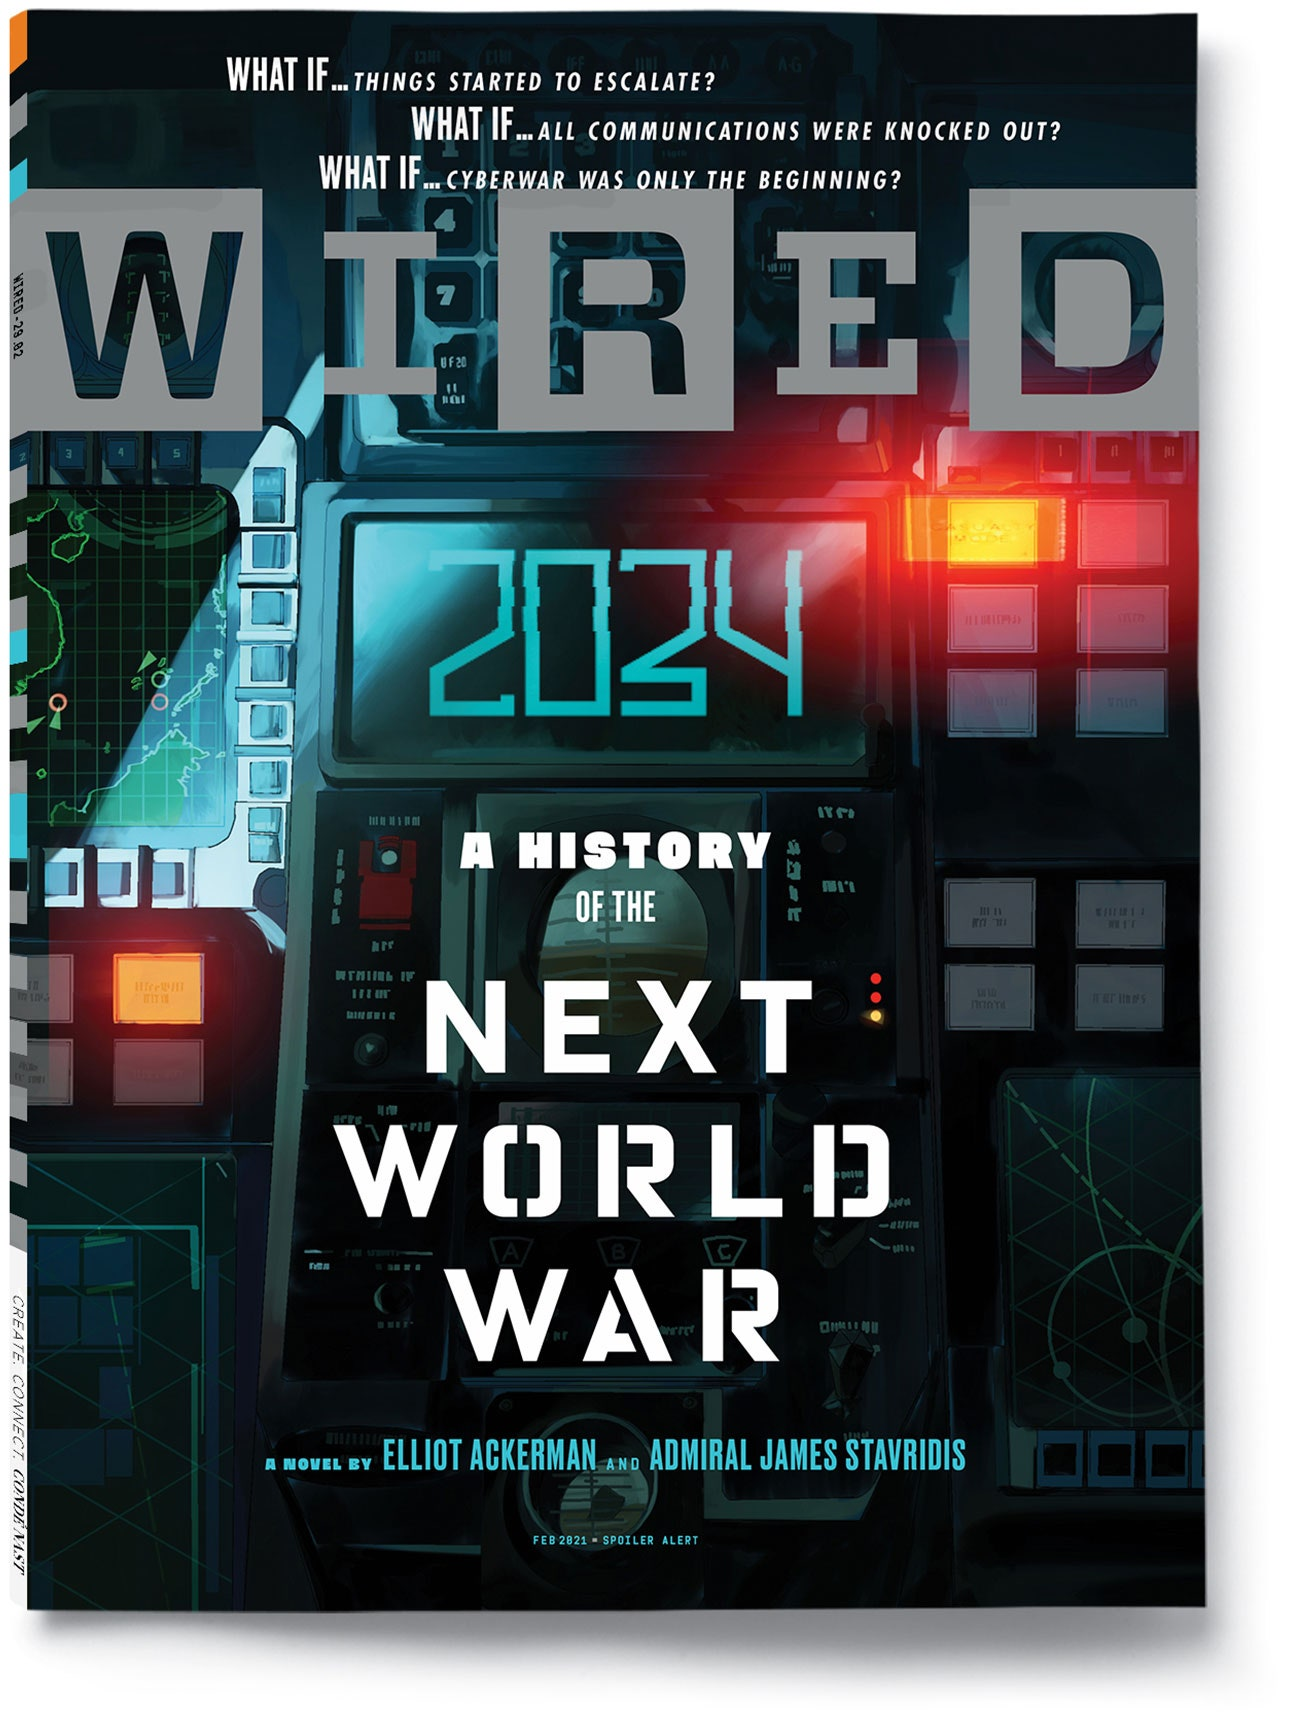 WIRED February 2021 issue cover 2034 A History of the Next World War